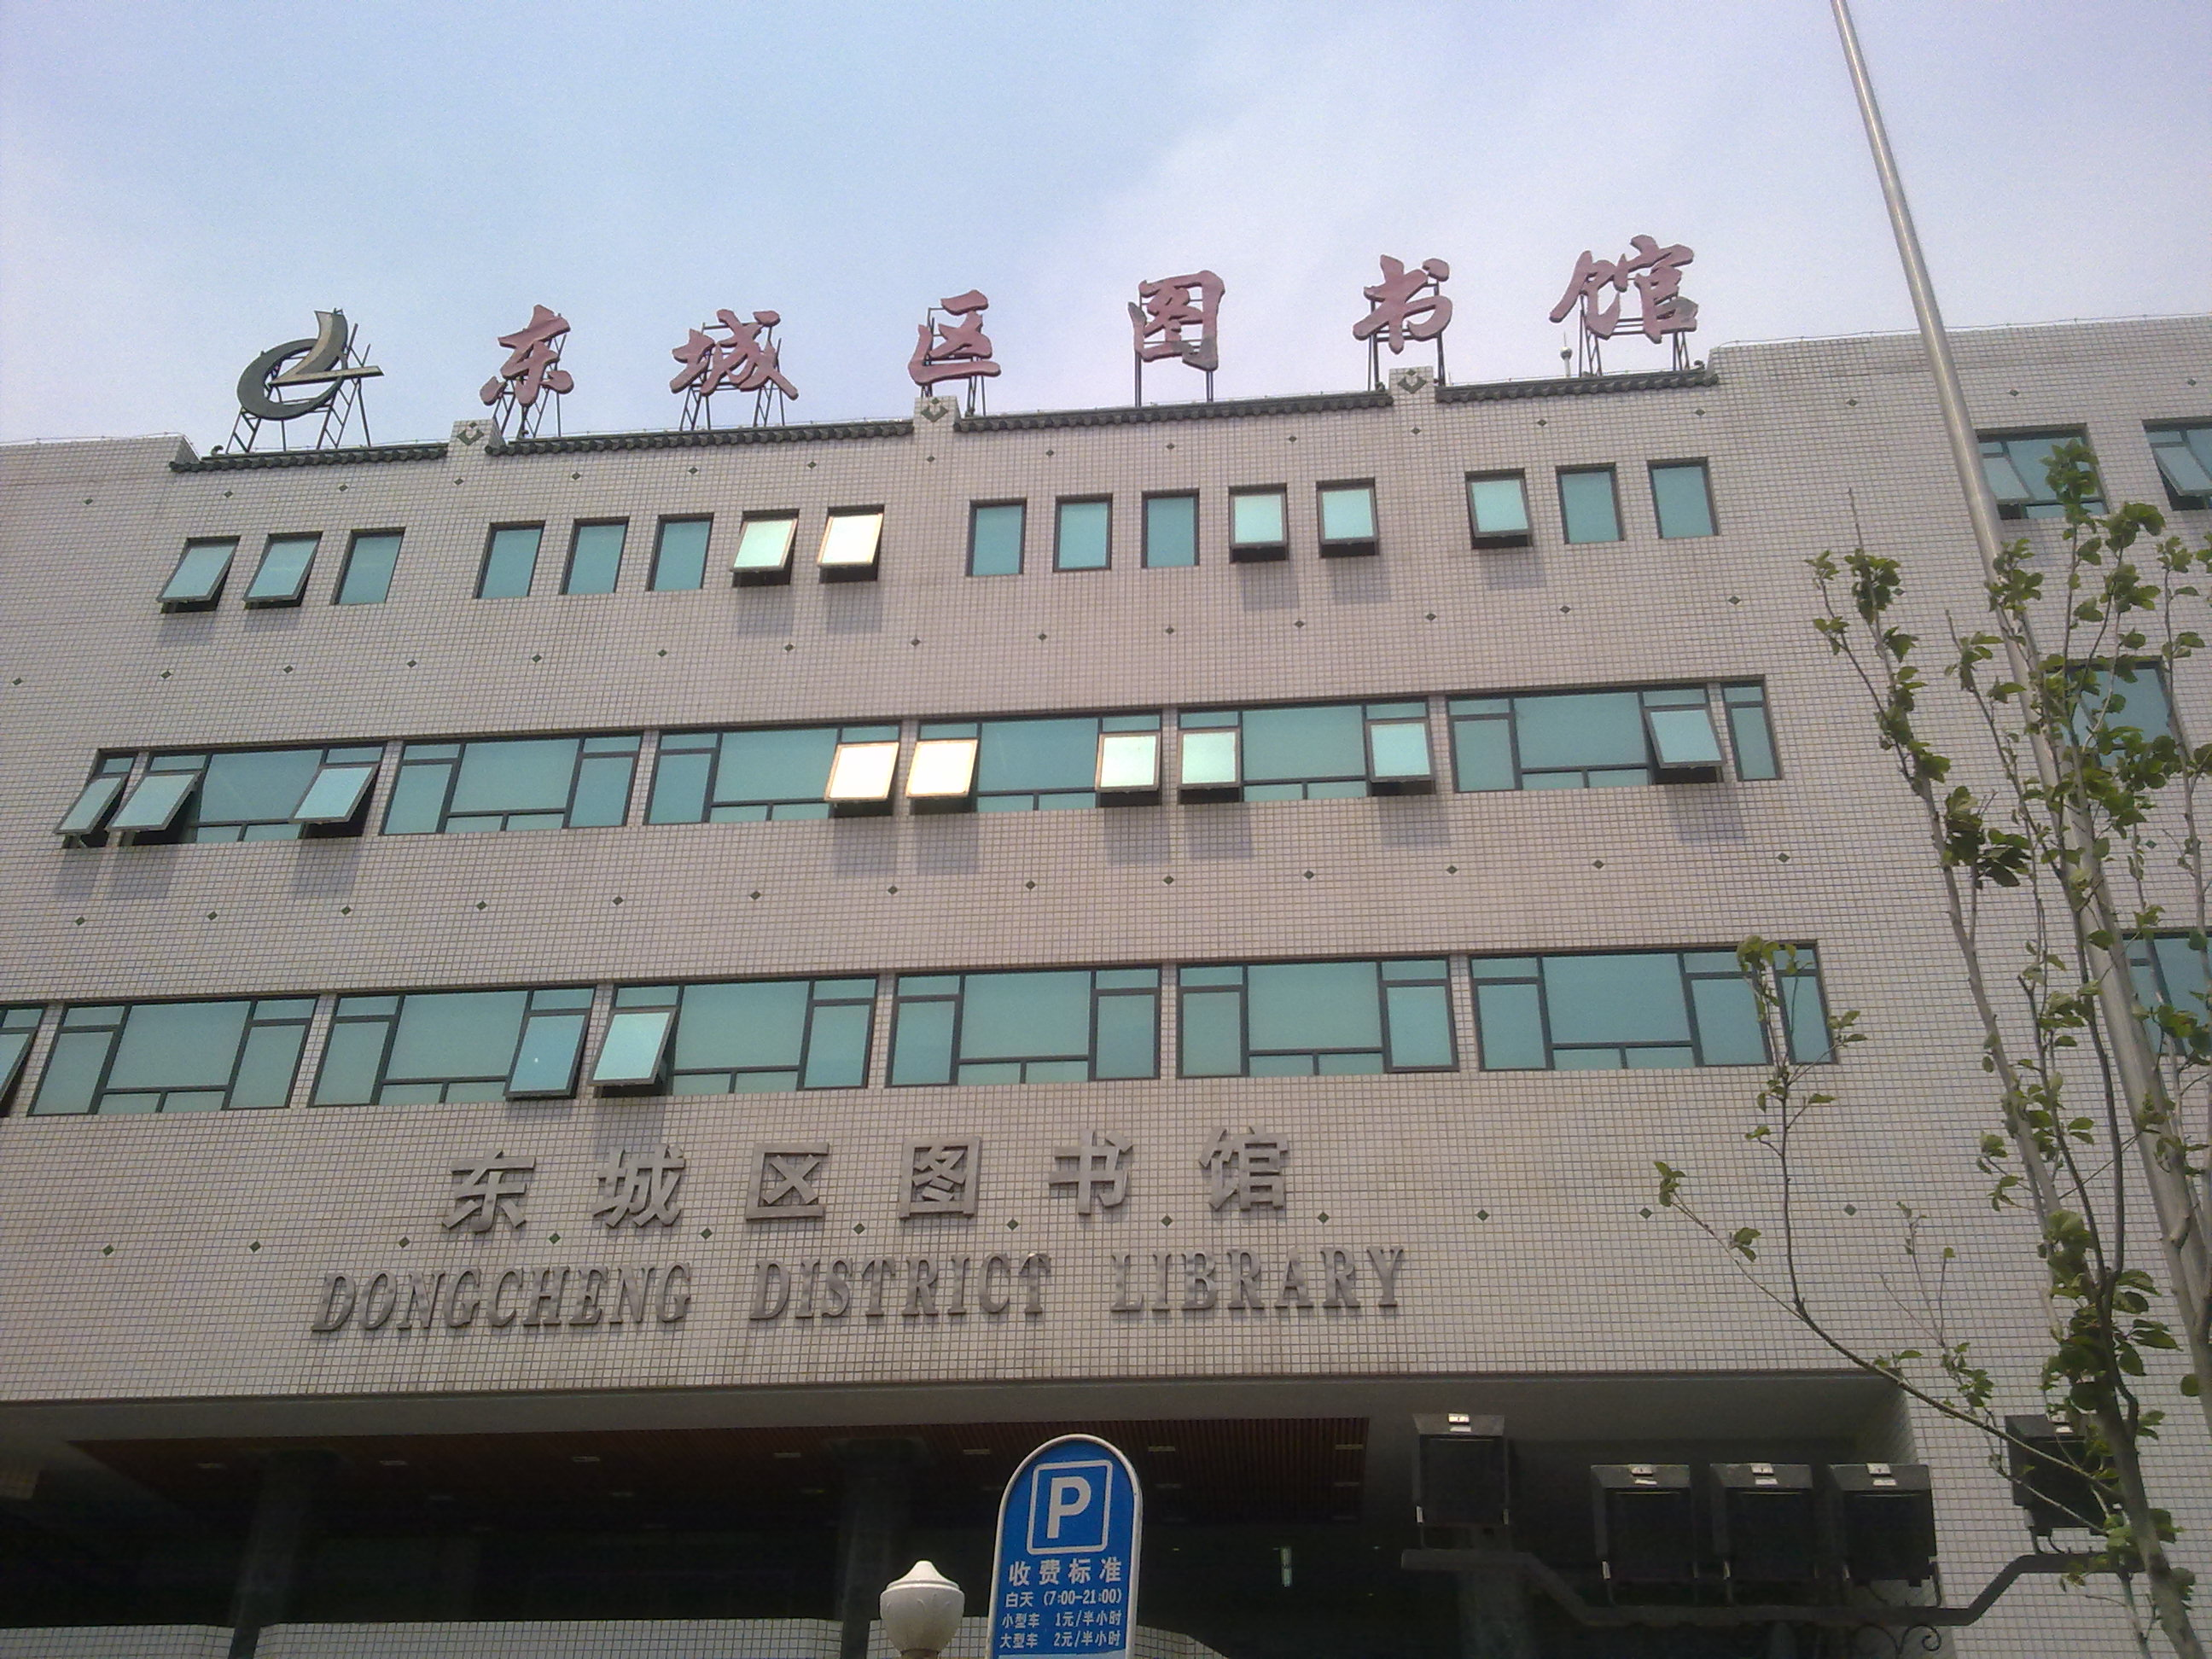 Beijing Dongcheng District Library - China Yellow Pages and